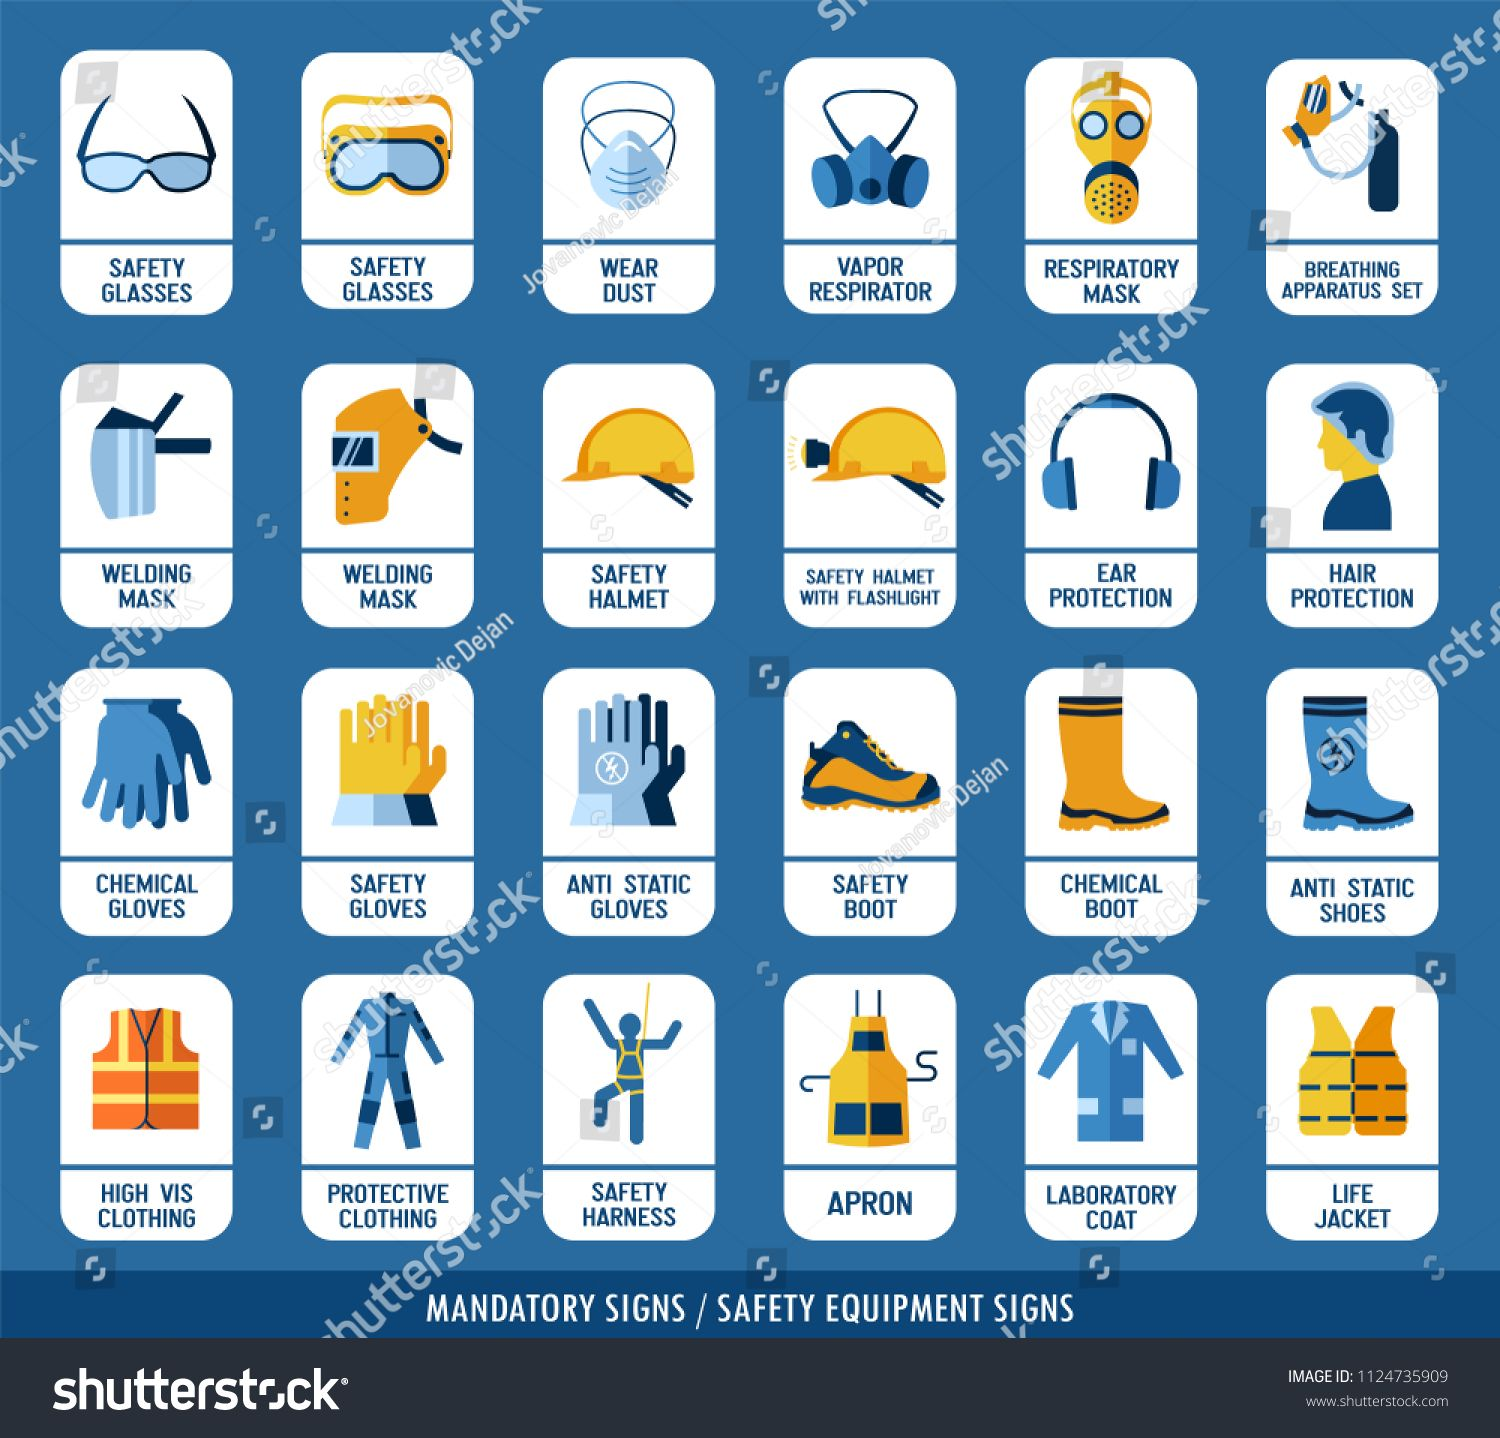 Collection of safety equipment. Set of safety and health